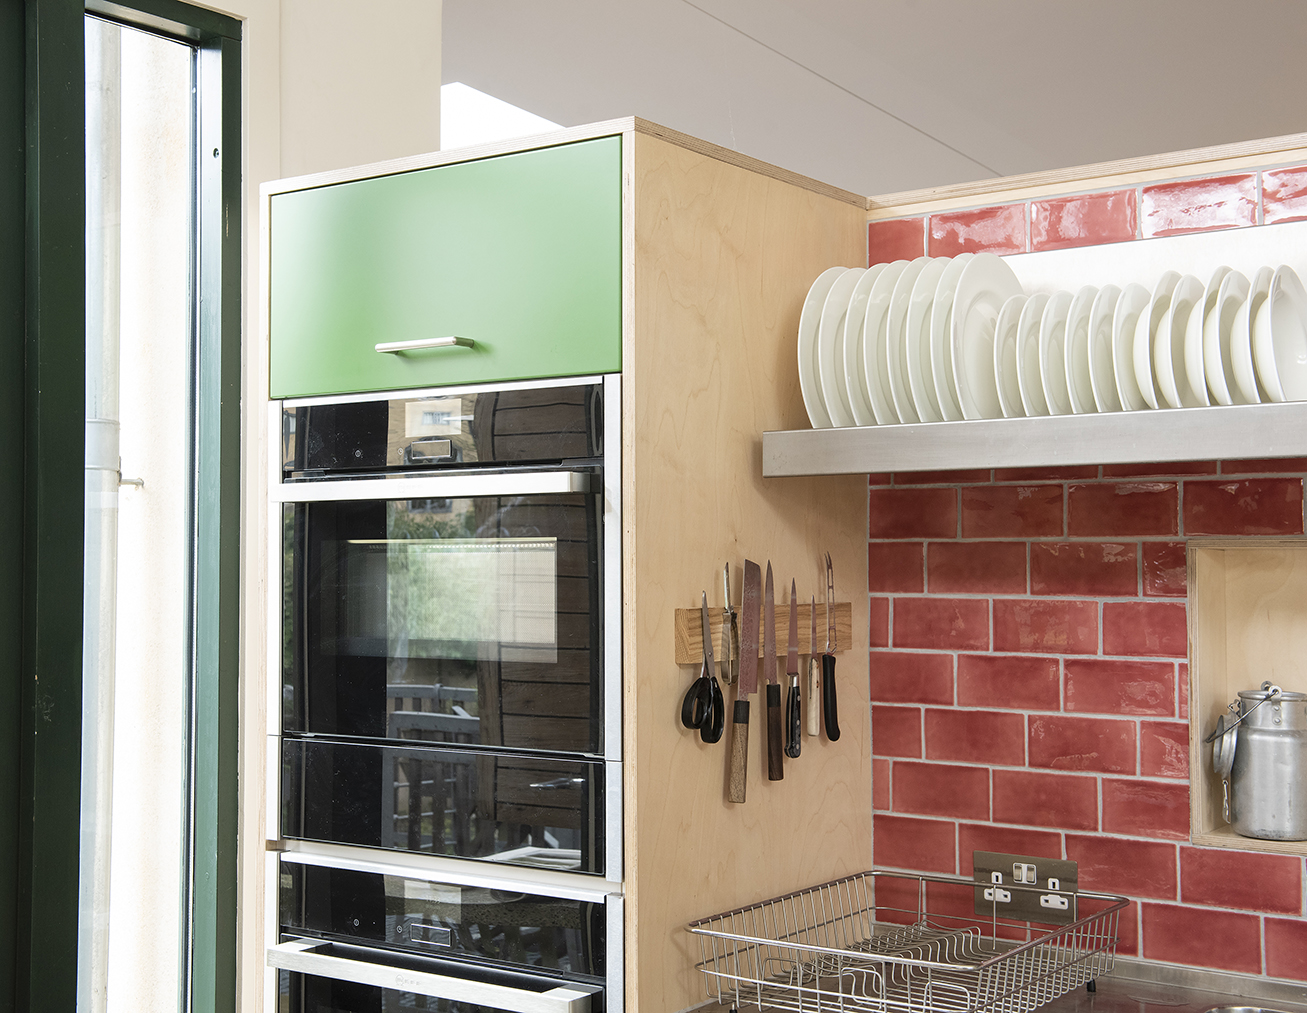 Sarah-Wigglesworth-Architects R20 oven